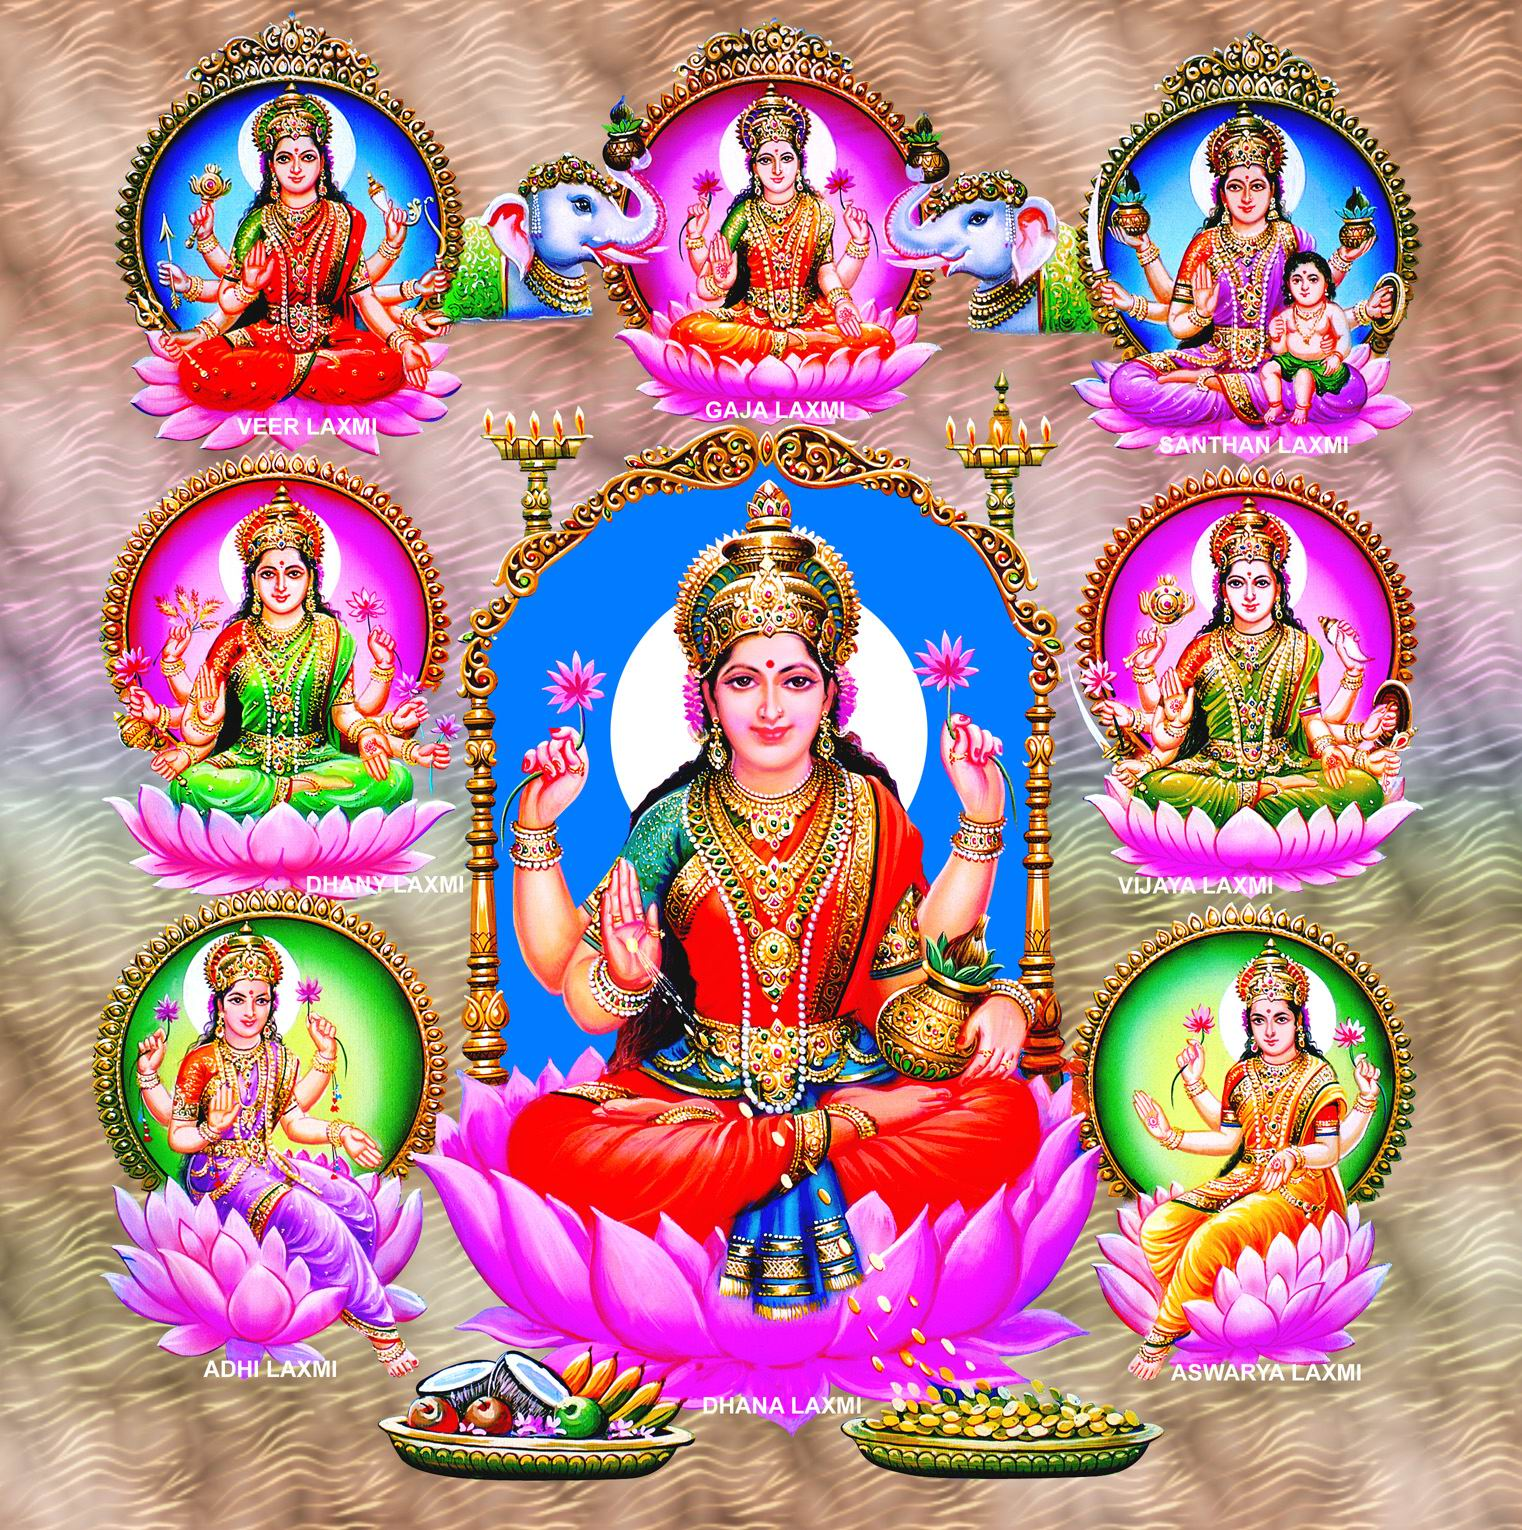 Bhagwan Ji Help Me: Devi Mata Wallpapers